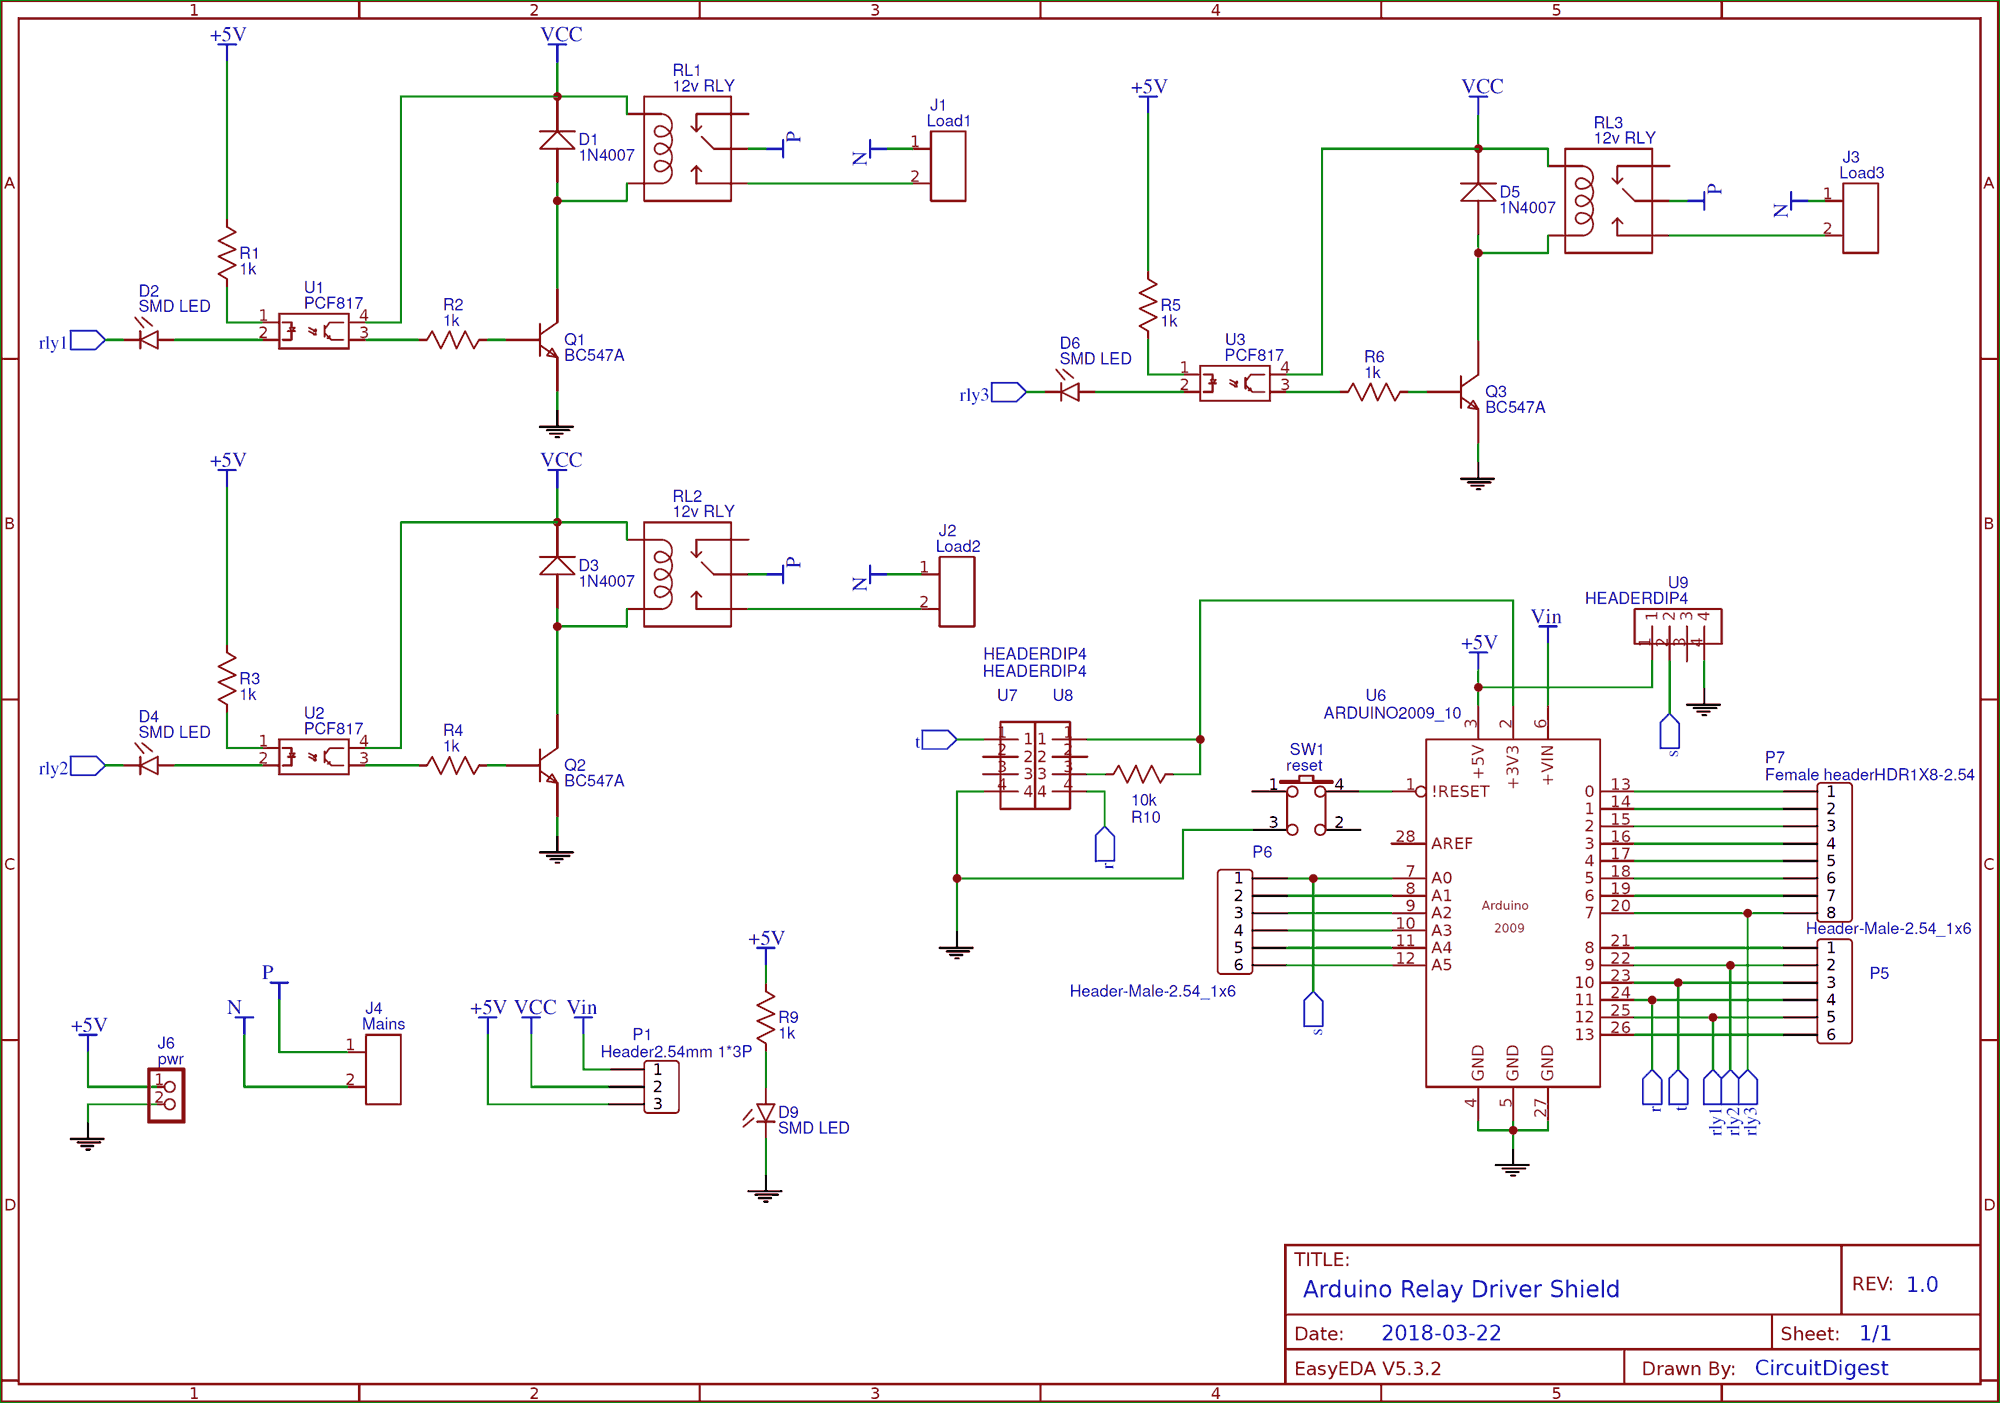 Diy arduino relay driver shield pcb circuit diagram for diy arduino relay driver shield pcb ccuart Images